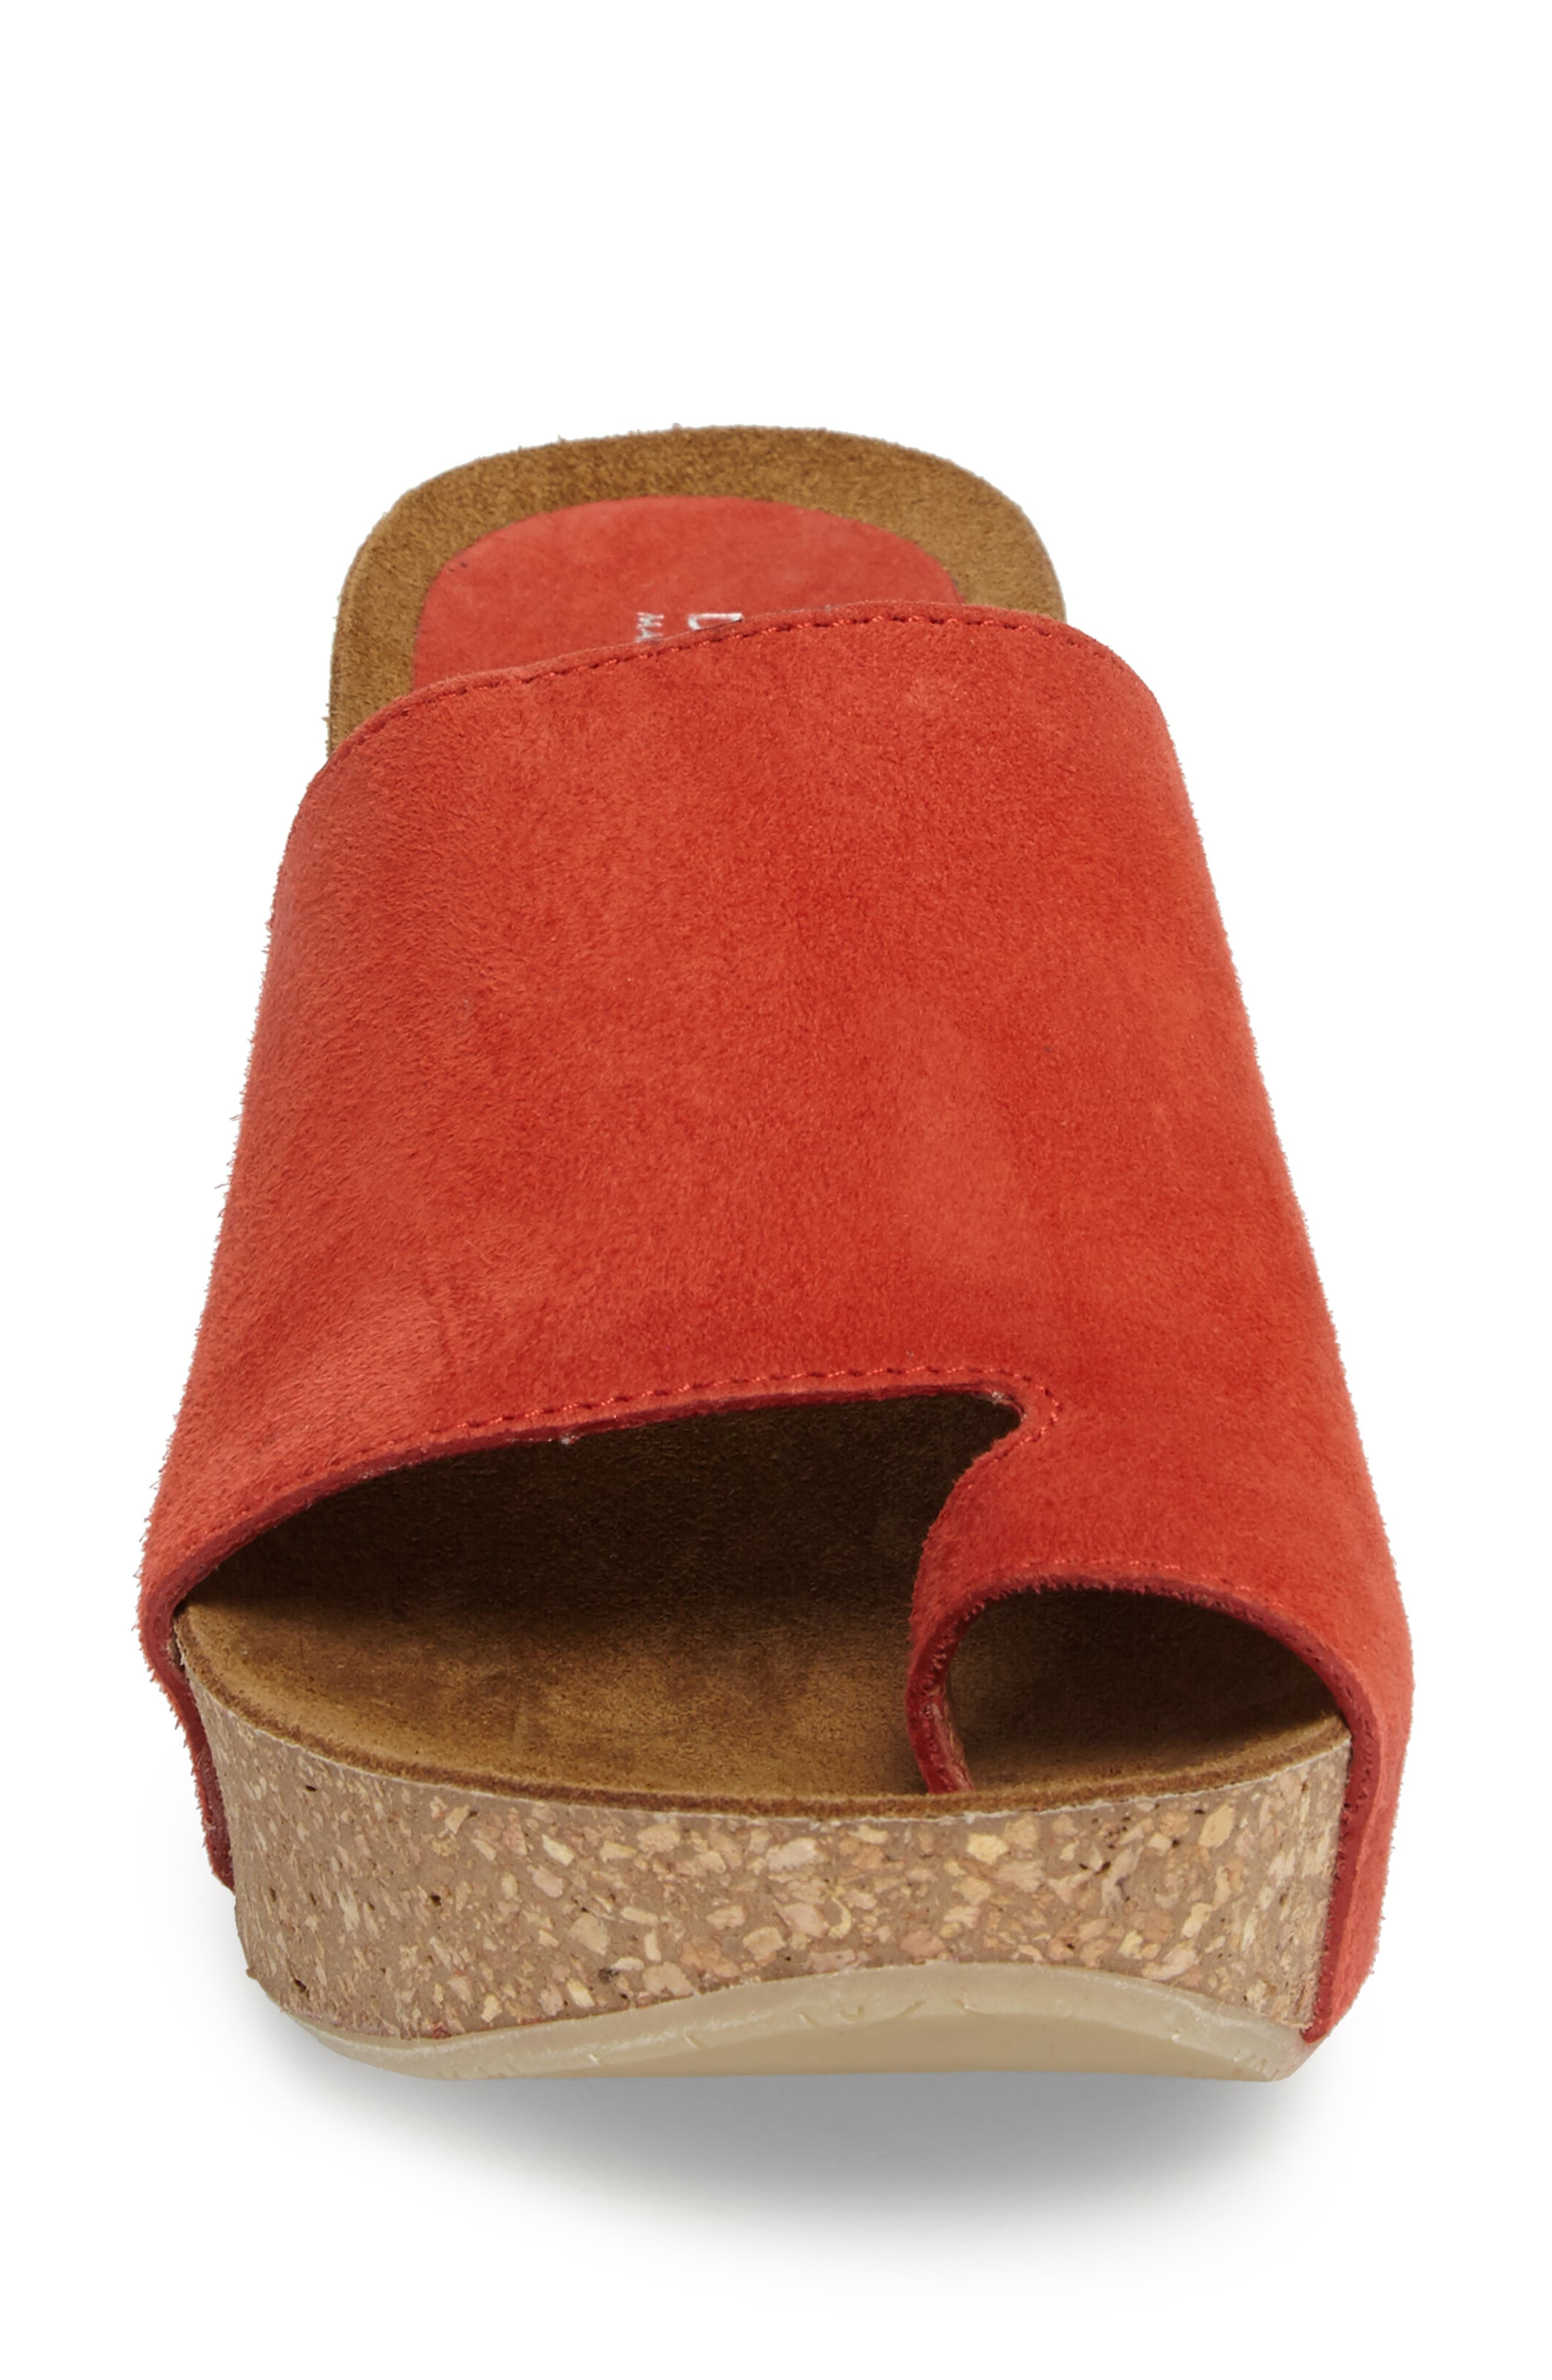 Donald J Pliner Ginie Platform Wedge Sandal,                             Alternate thumbnail 28, color,